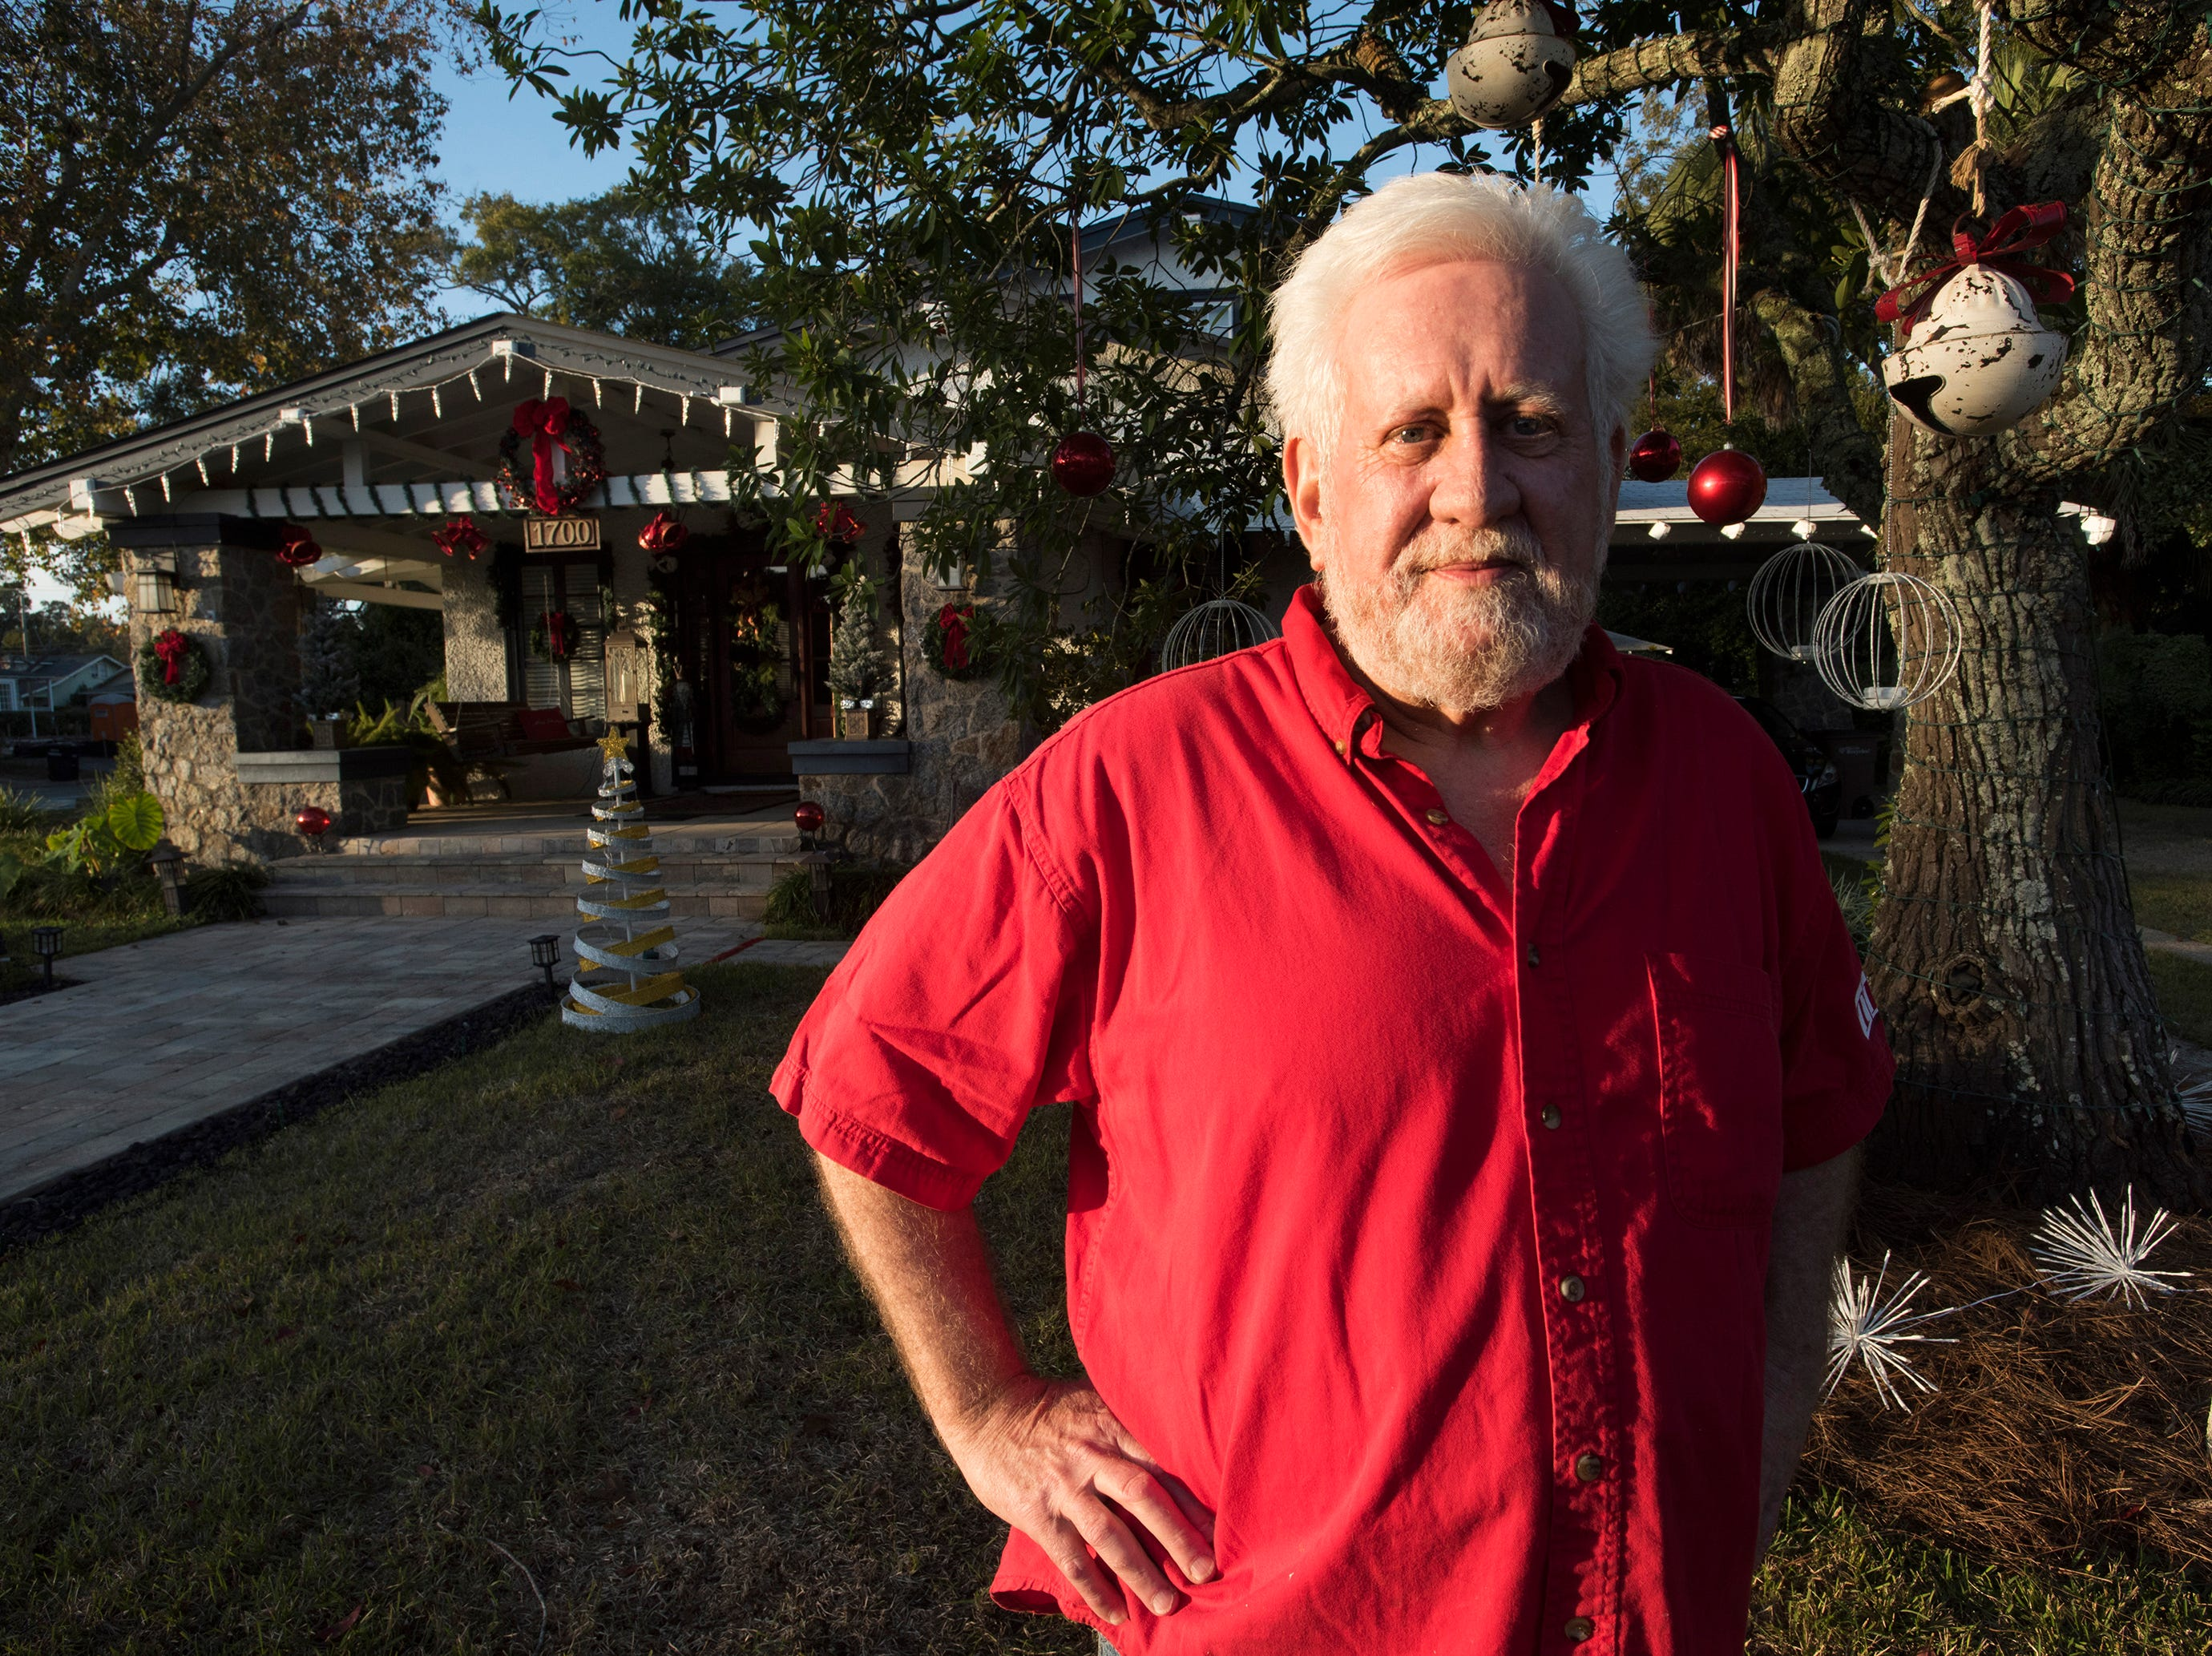 After 25-years of decoration his property for the holidays, Pensacola resident, Mike Burleson, is taking a break from his usual holiday display. On Monday, Dec. 3, 2018, Burleson finished his minimalist presentation.